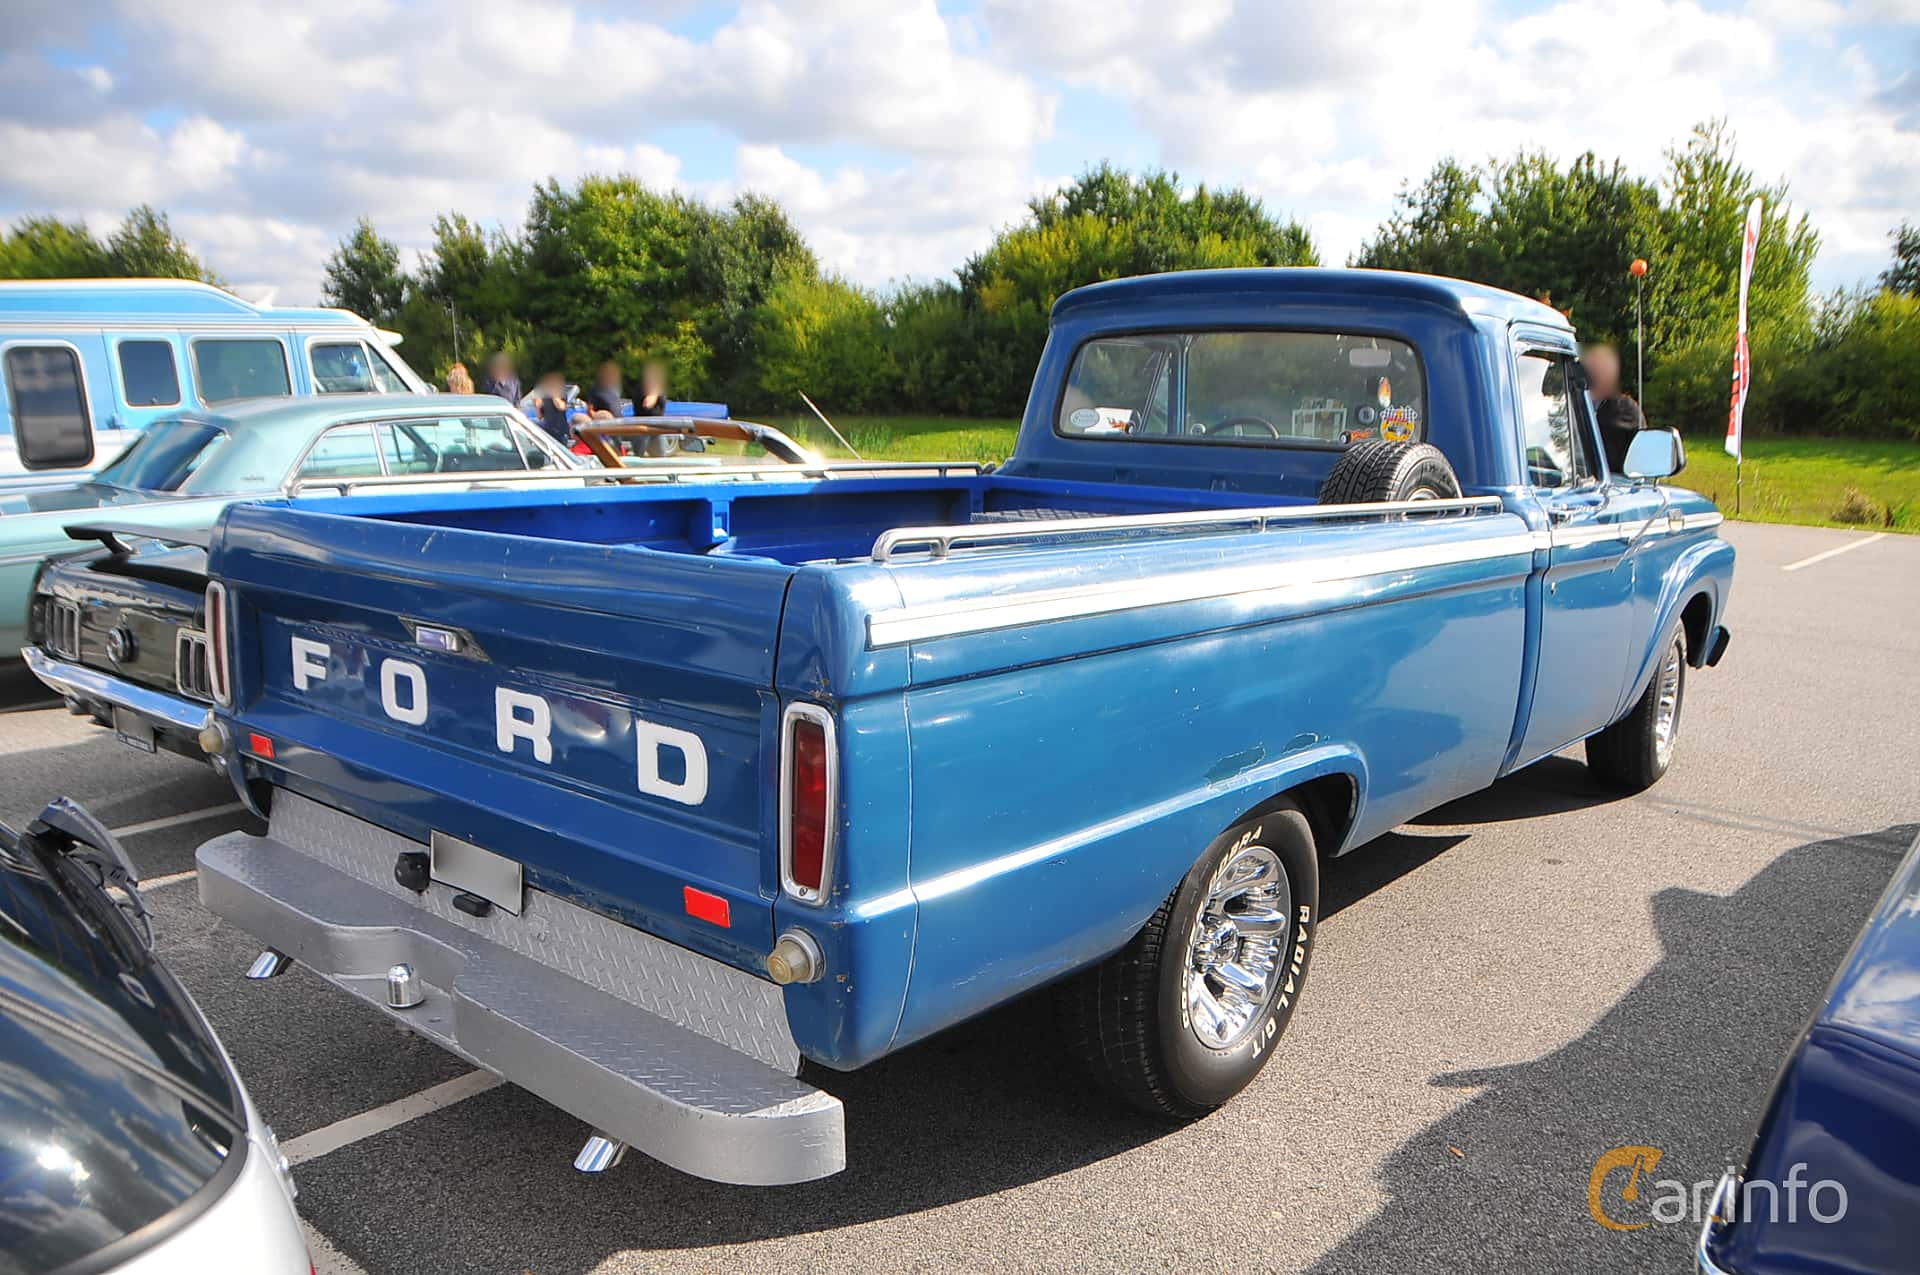 Ford F Regular Cab 4.3 Manuell, 1964 at Biltema Gatbilar Lund 2018